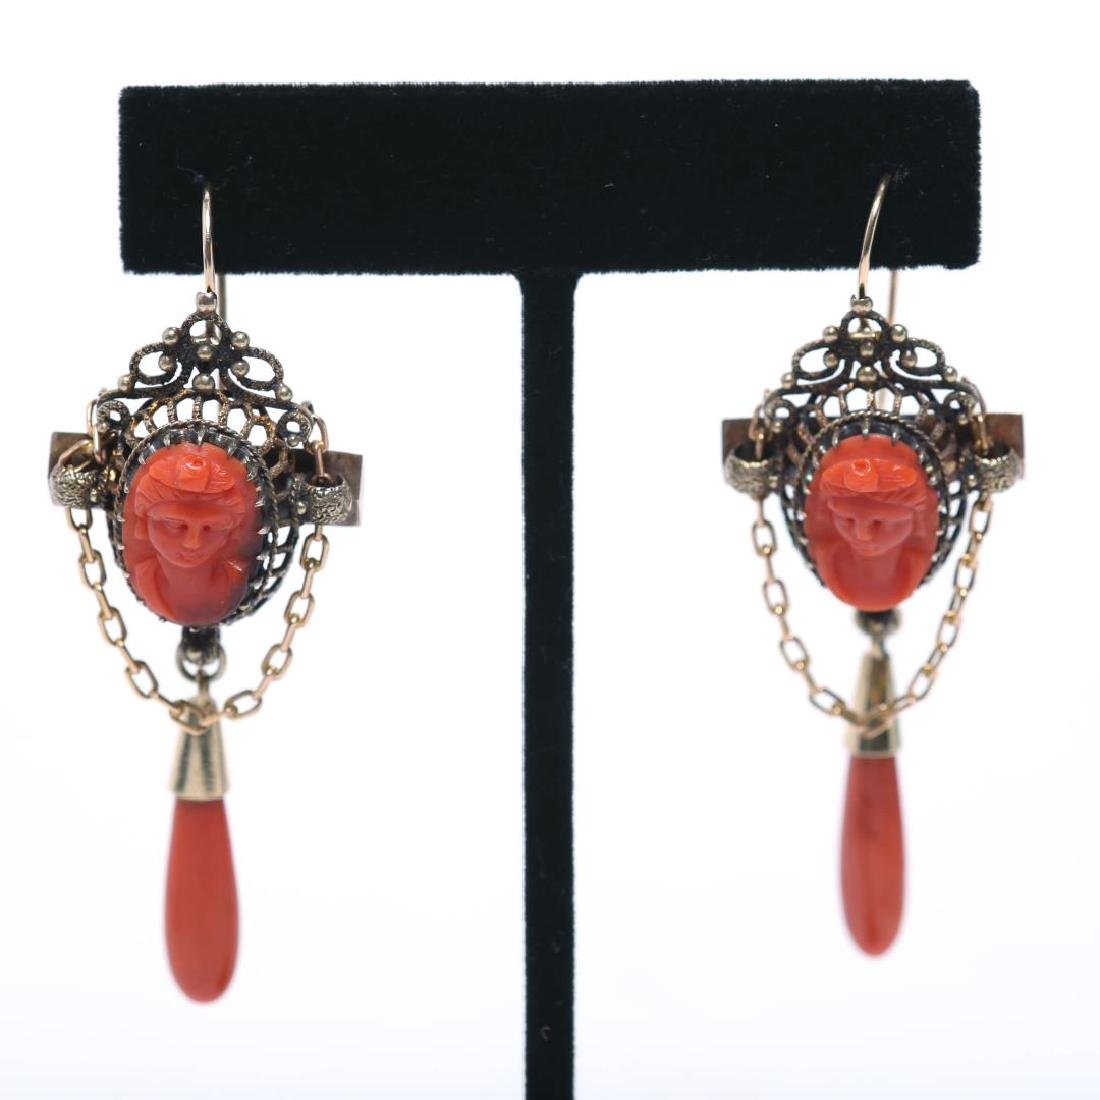 Coral Cameo Earrings, Antique in Ornate 14K Gold